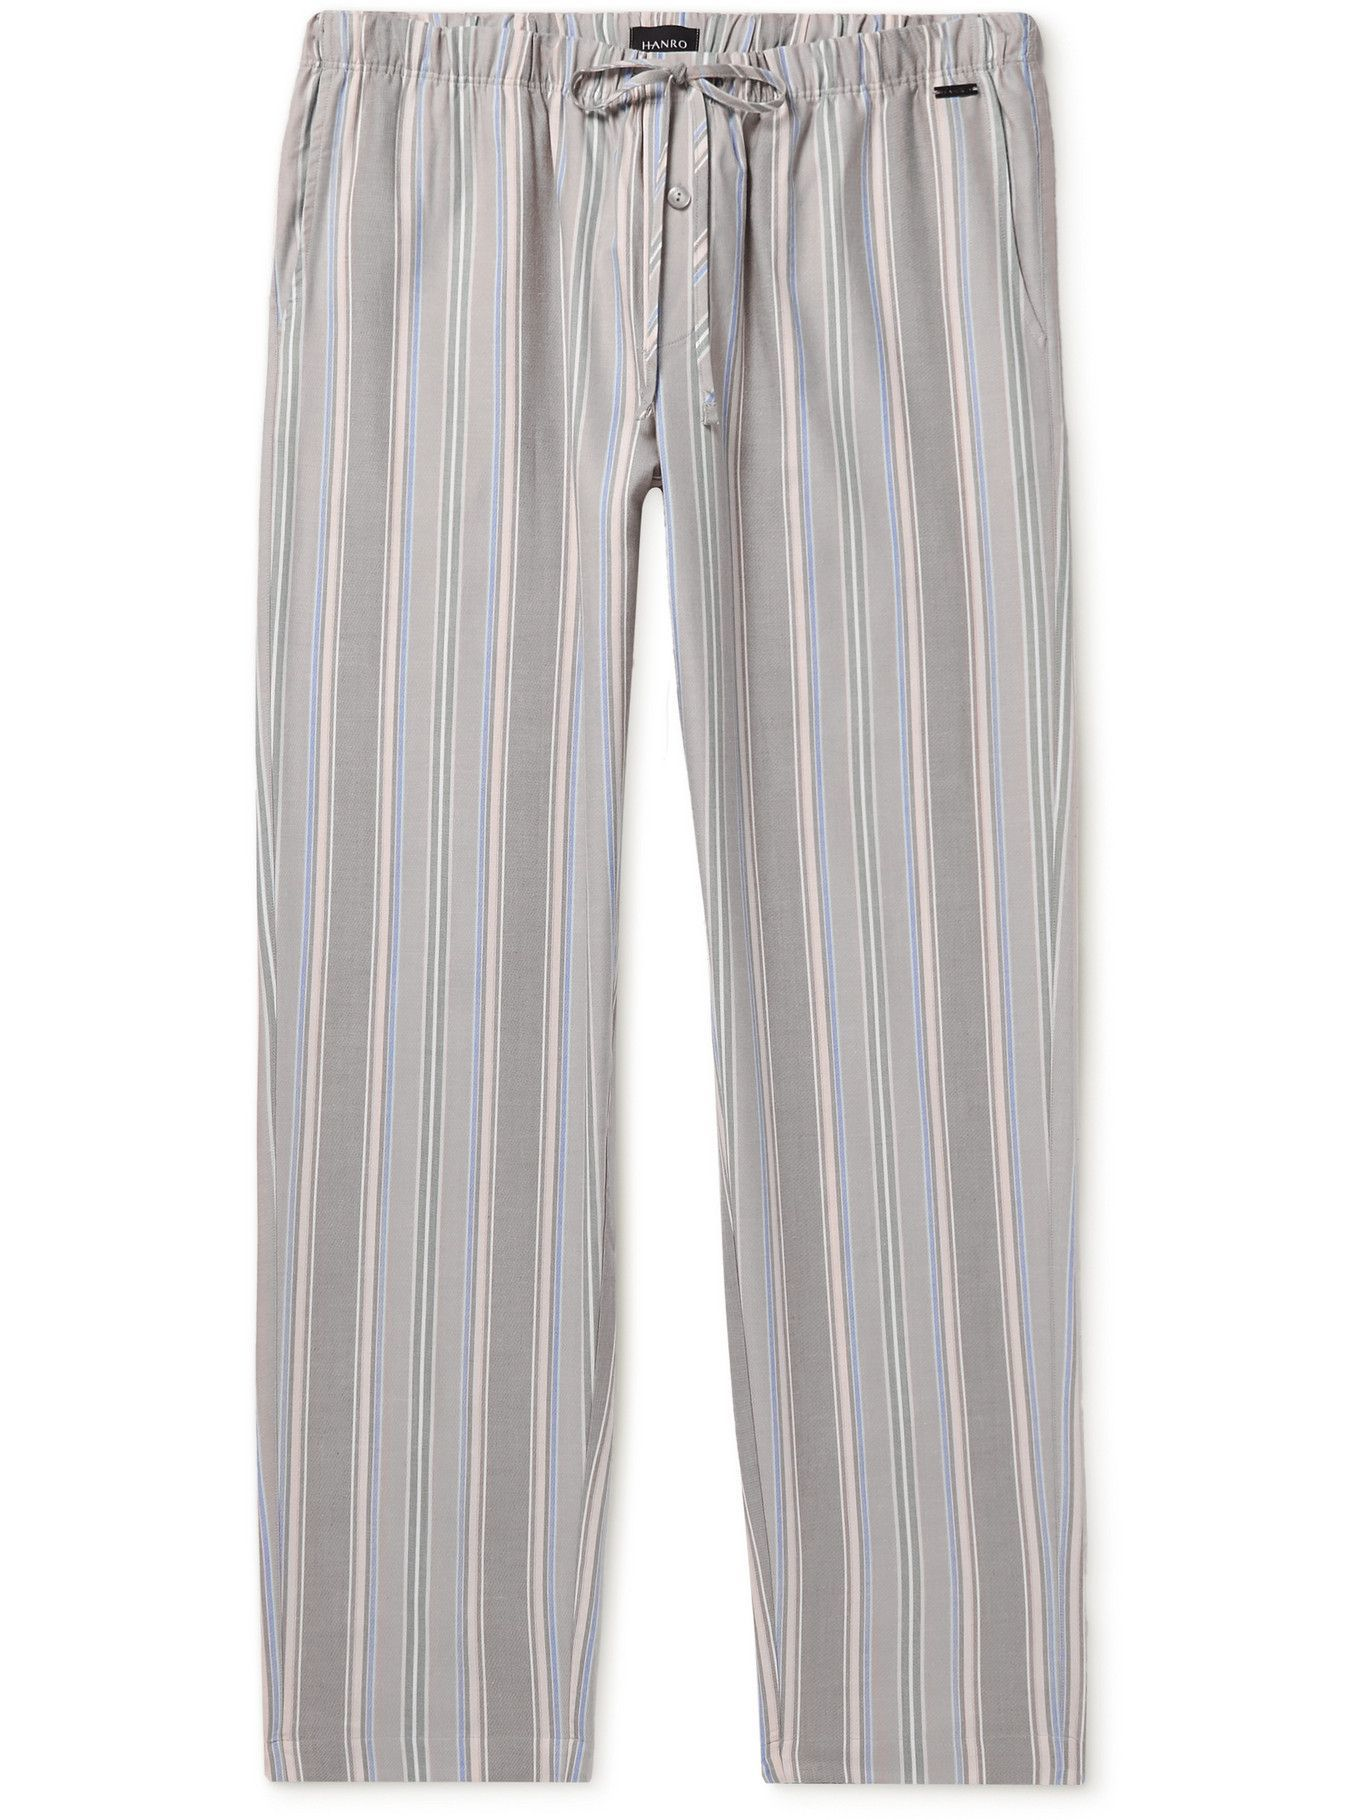 HANRO - Night & Day Striped Cotton and Lyocell-Blend Twill Pyjama Trousers - Gray